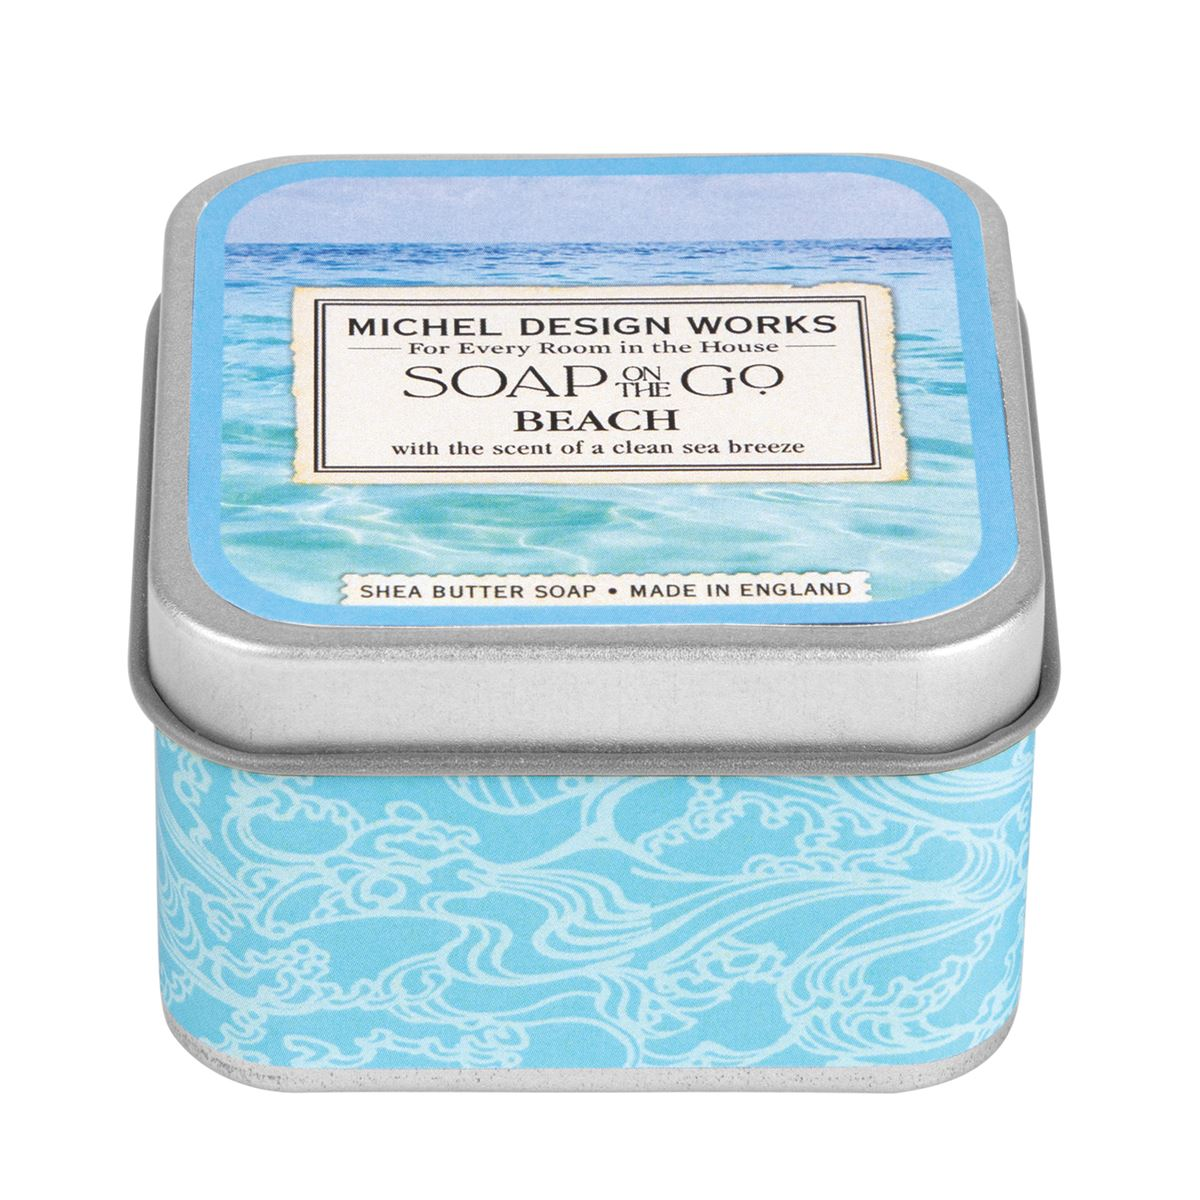 Beach Soap on the Go - Molly's! A Chic and Unique Boutique